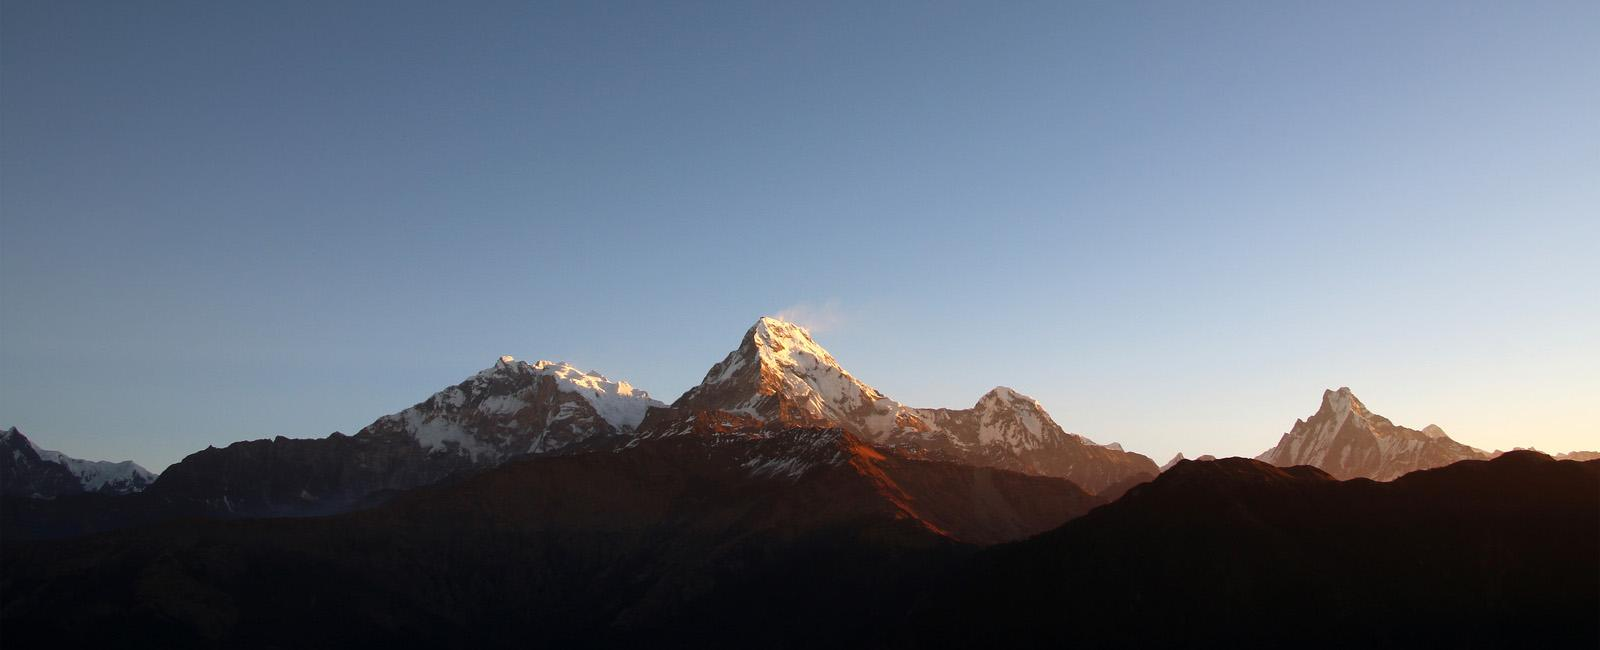 Annapurna Easy Hike for Families